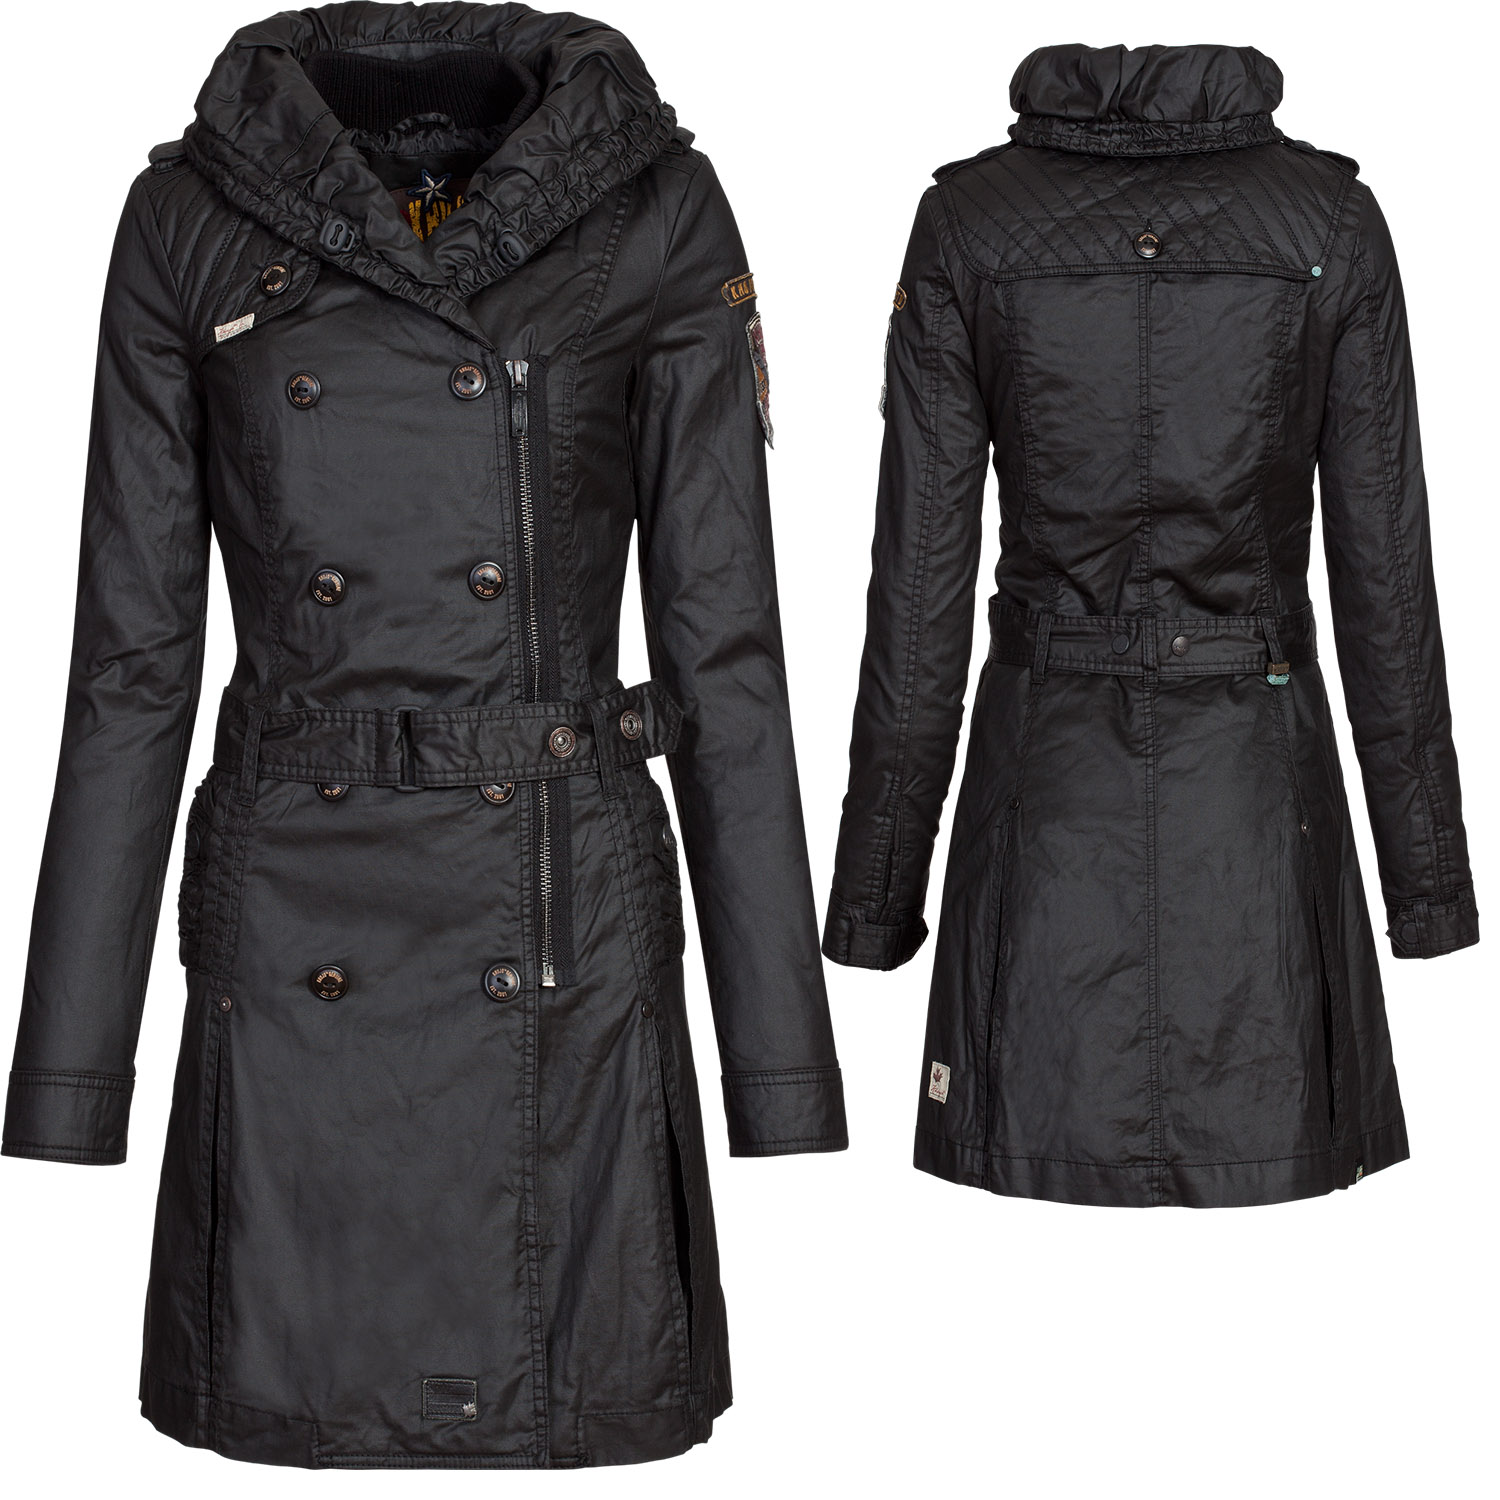 khujo damen winter mantel jacke samantha m innenjacke wintermantel winterjacke ebay. Black Bedroom Furniture Sets. Home Design Ideas